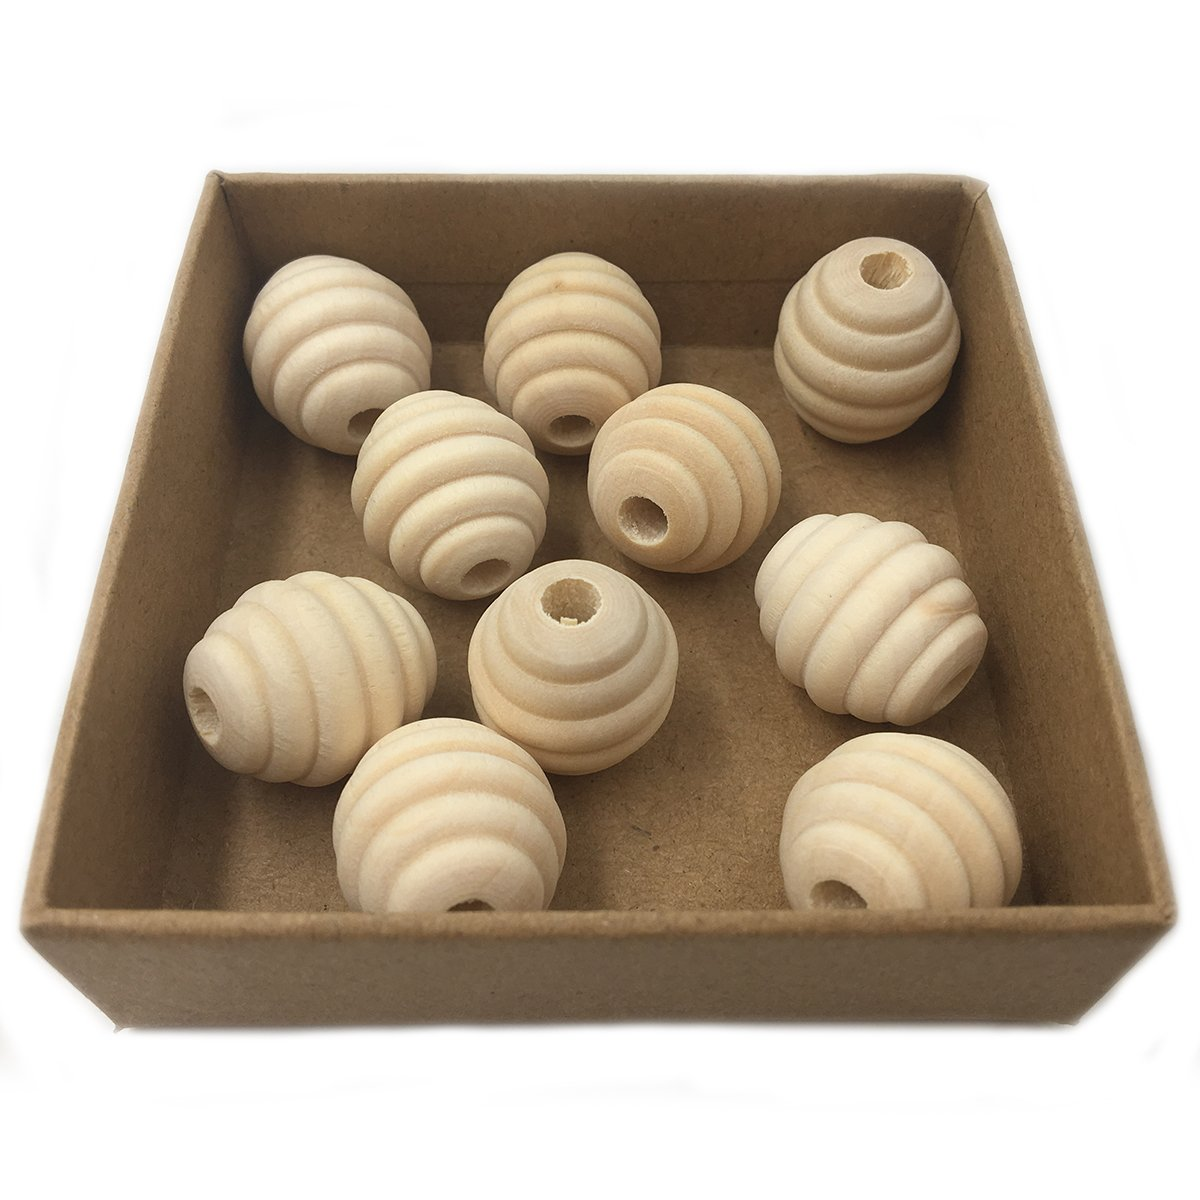 Wendysun 50Pcs Natural Wooden Beads 20mm22mm Geometric Wood Beads Unfinished Spacer Beads Screw Thread Carved Beads